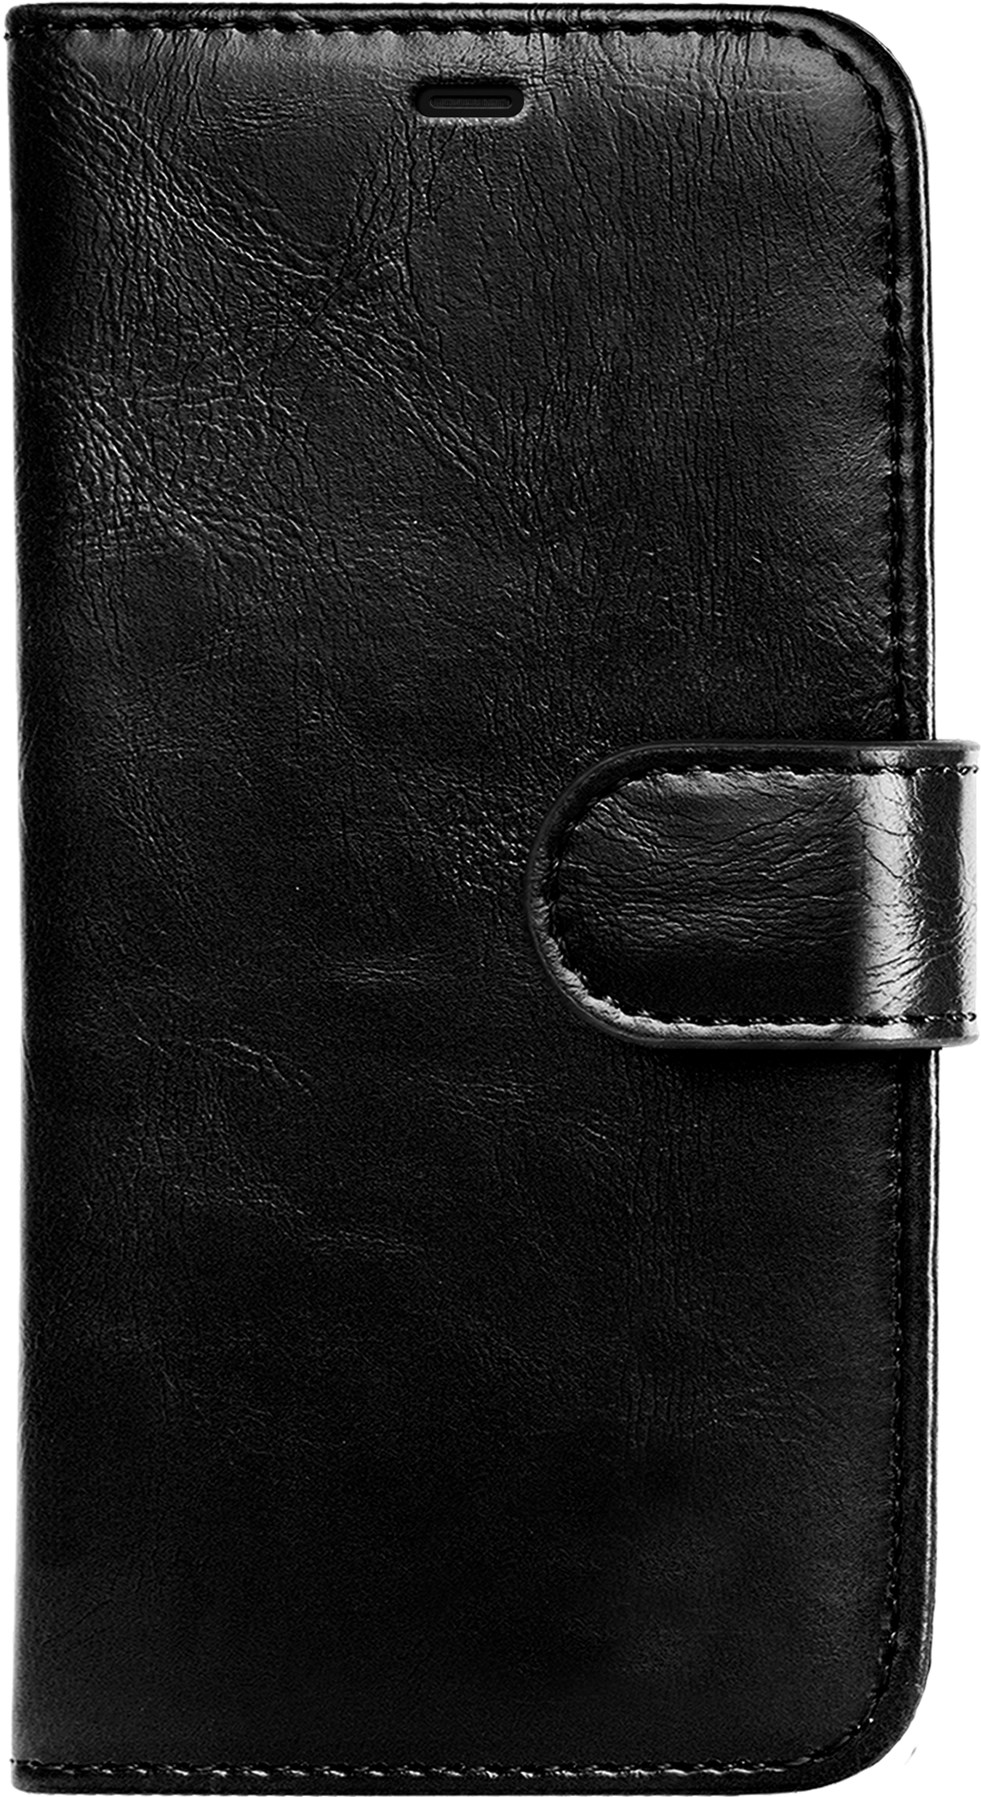 iDeal of Sweden Ideal Magnet Wallet + Iphone 11 Pro Max Black